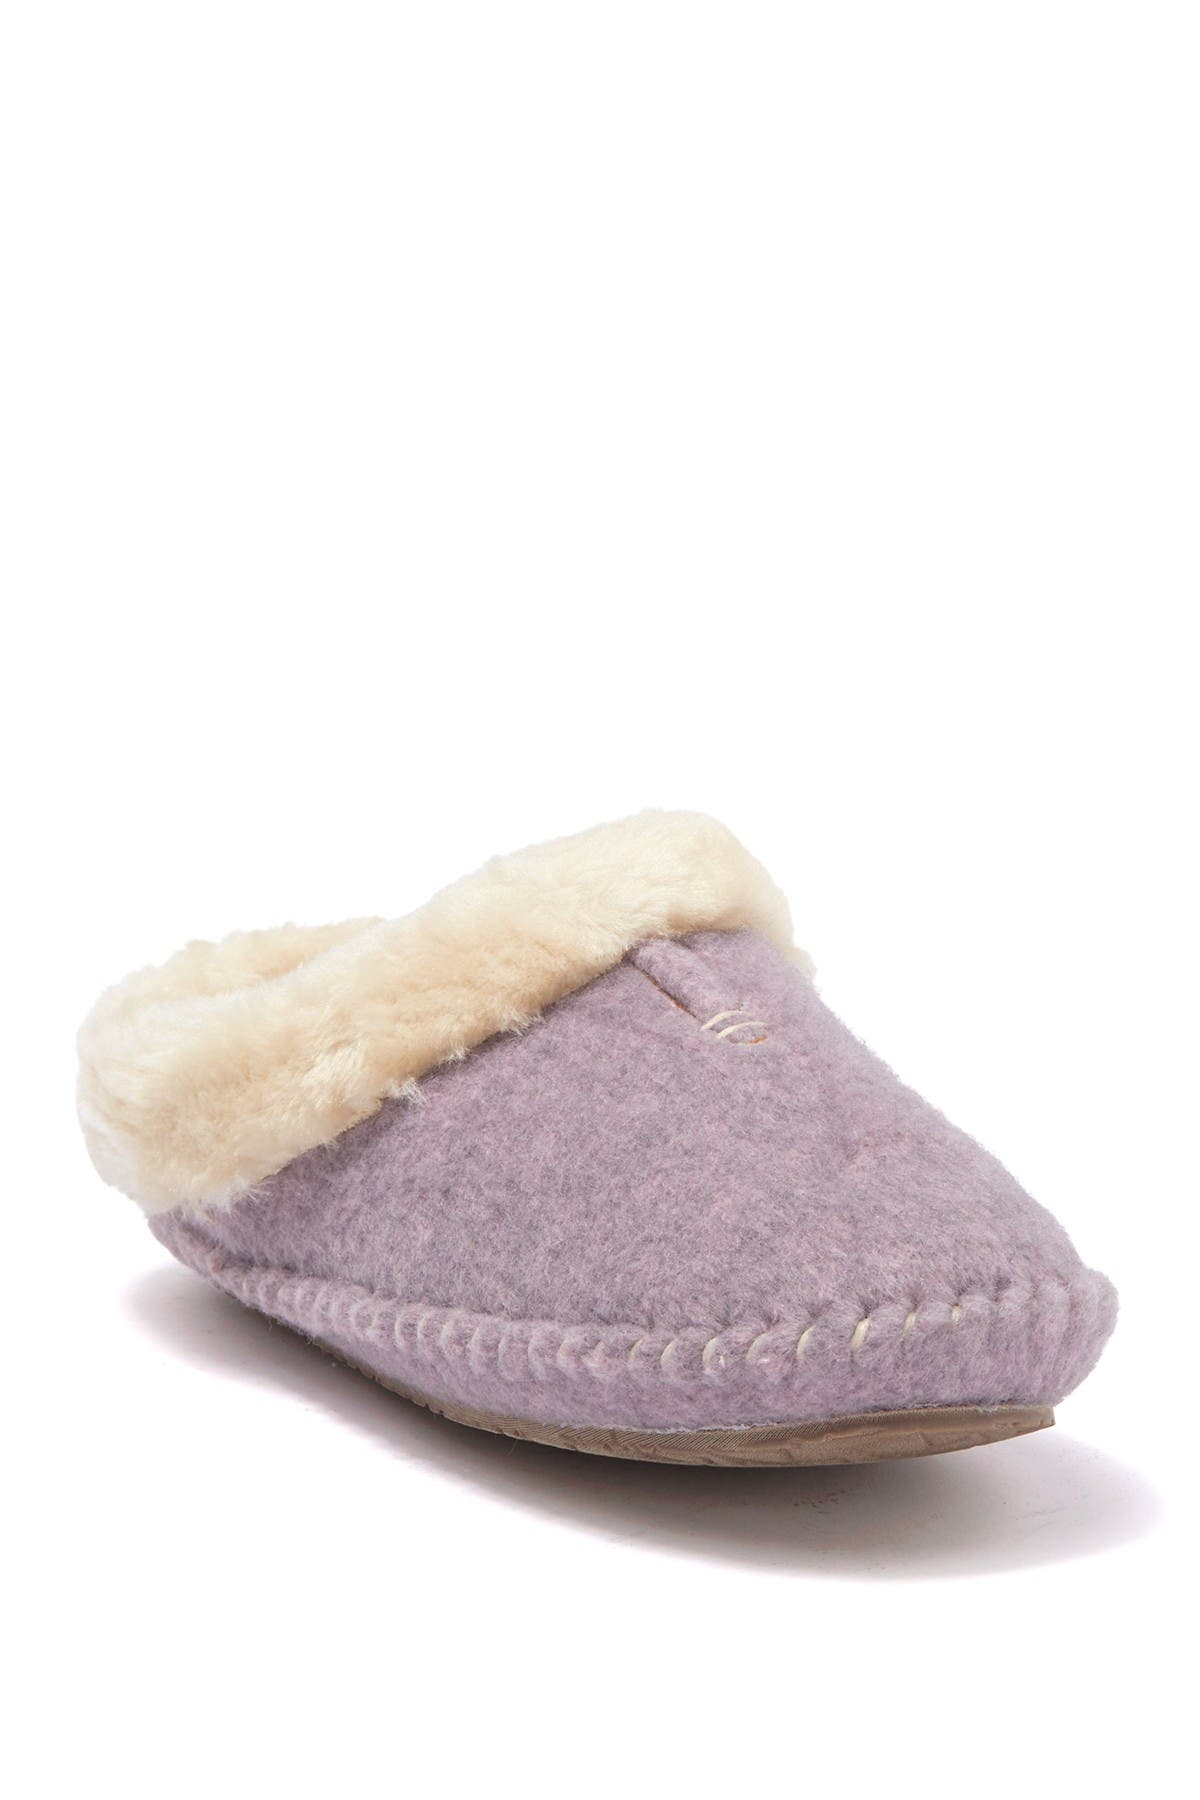 Image of Minnetonka Caroline Clog Slipper